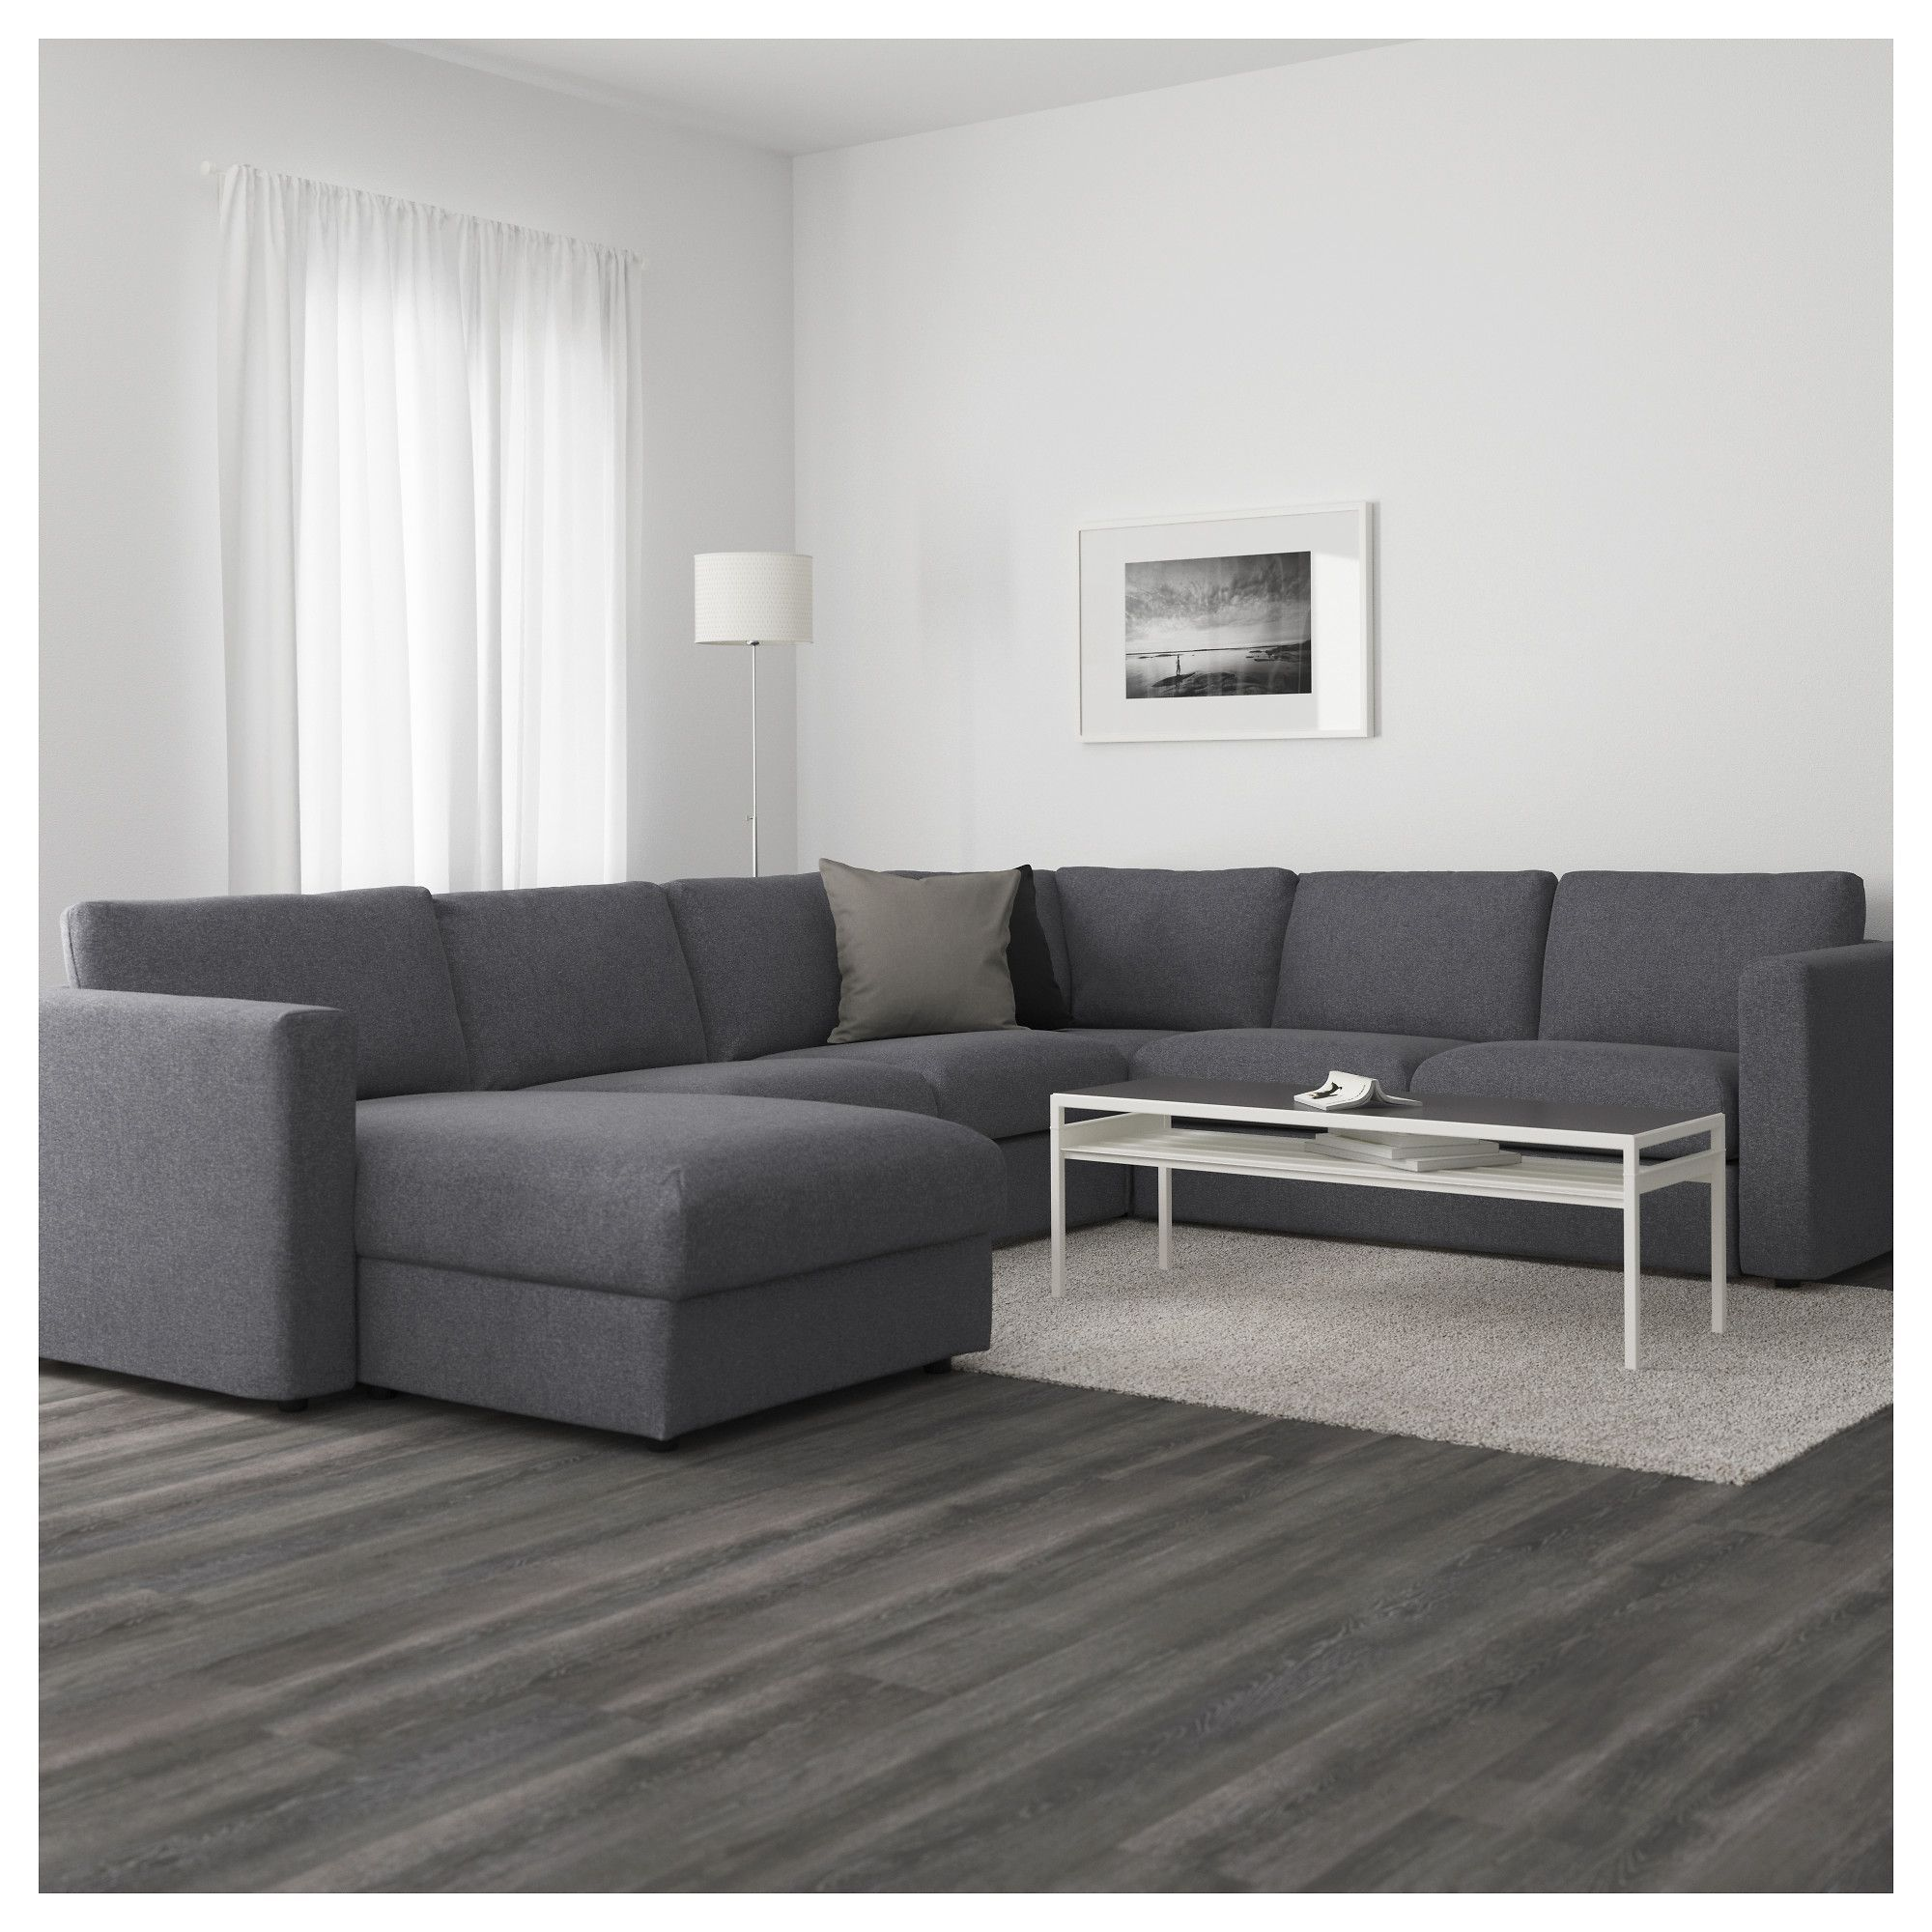 IKEA VIMLE Sectional, 5seat corner with chaise